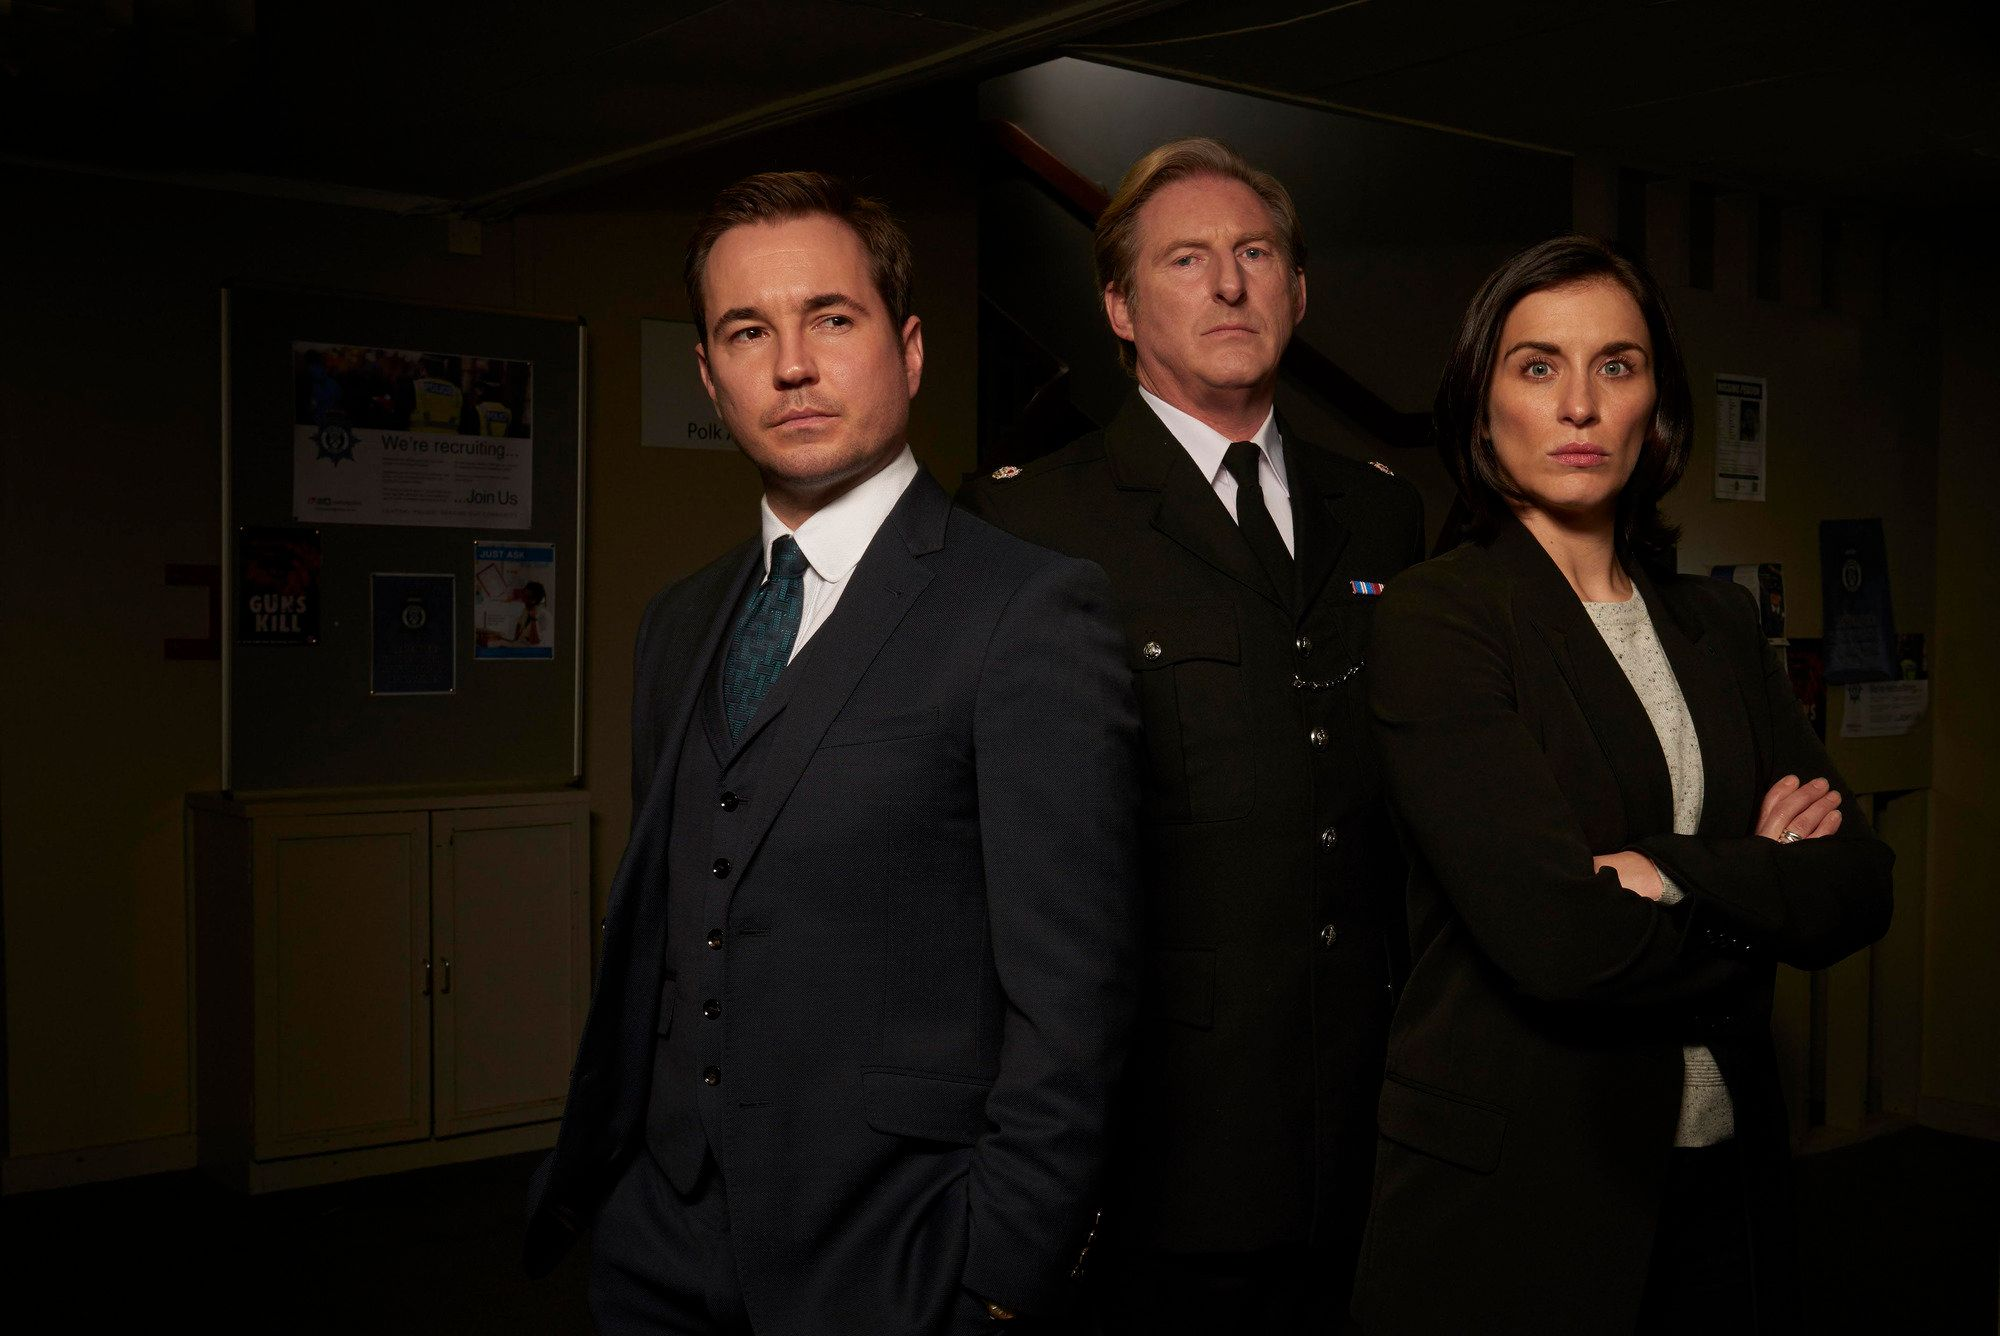 Where Have You Seen The 'Line Of Duty' S4 Stars